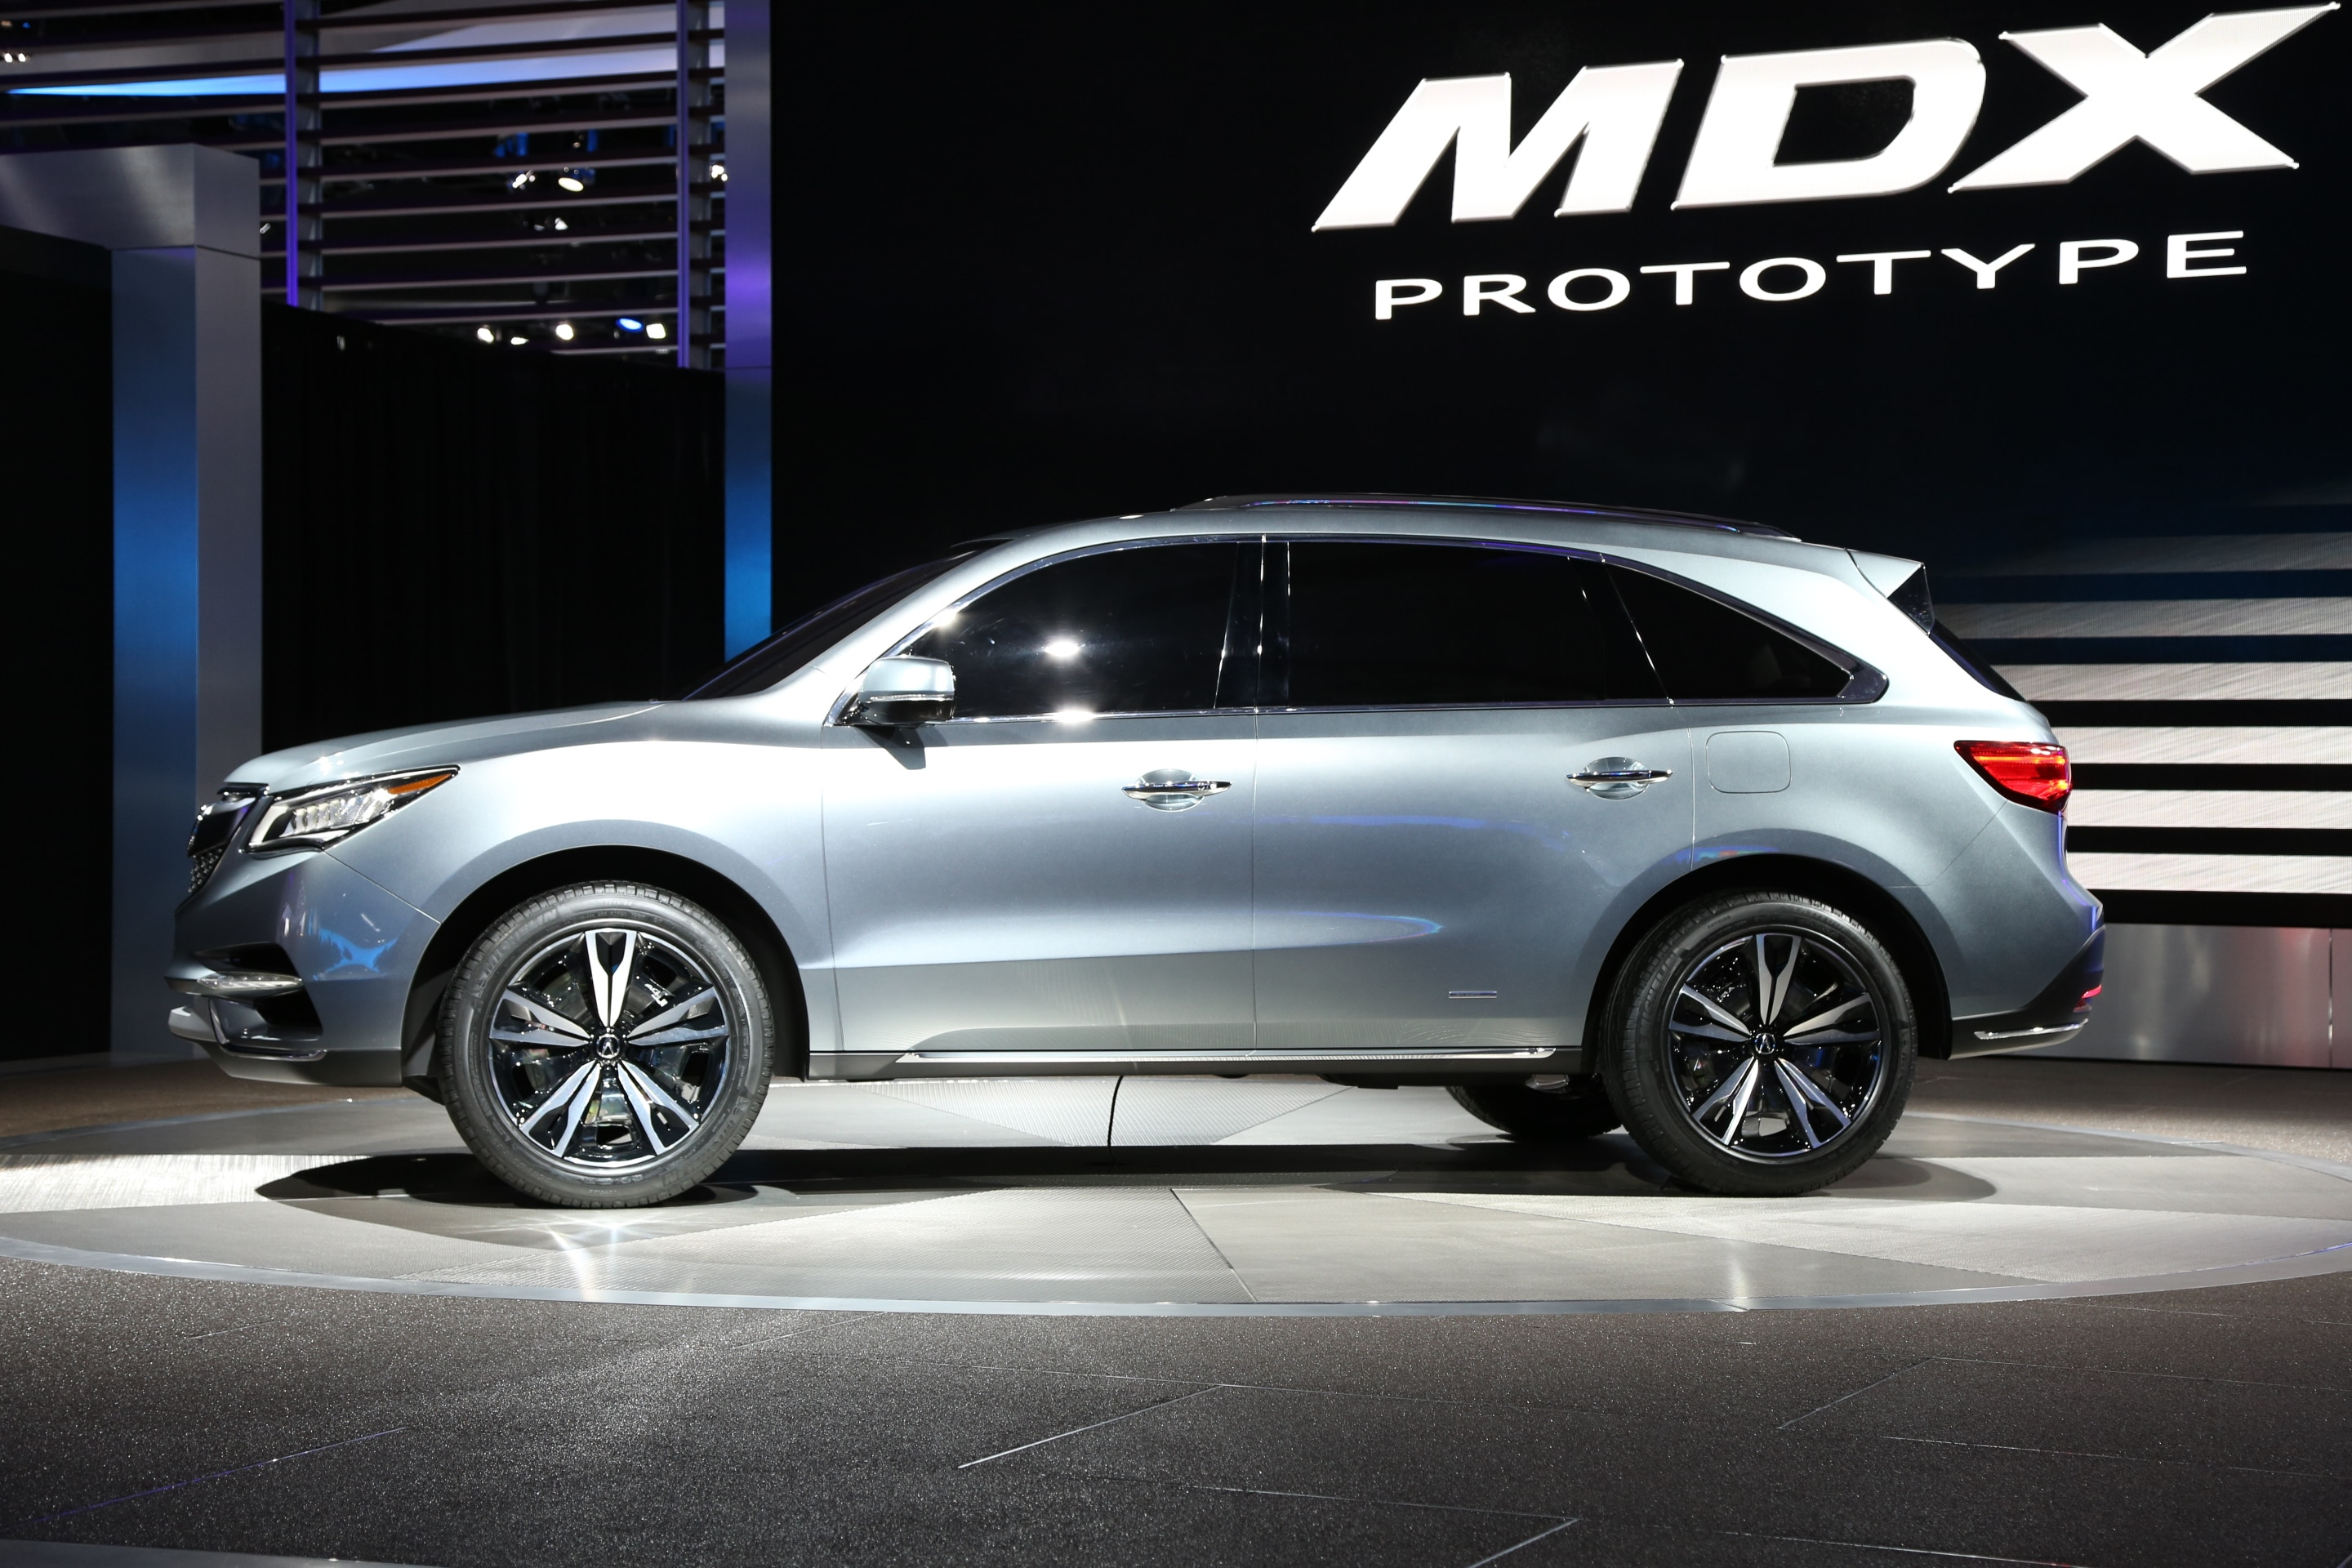 page roof mdx install cost forums forum acura image generation rack third present self